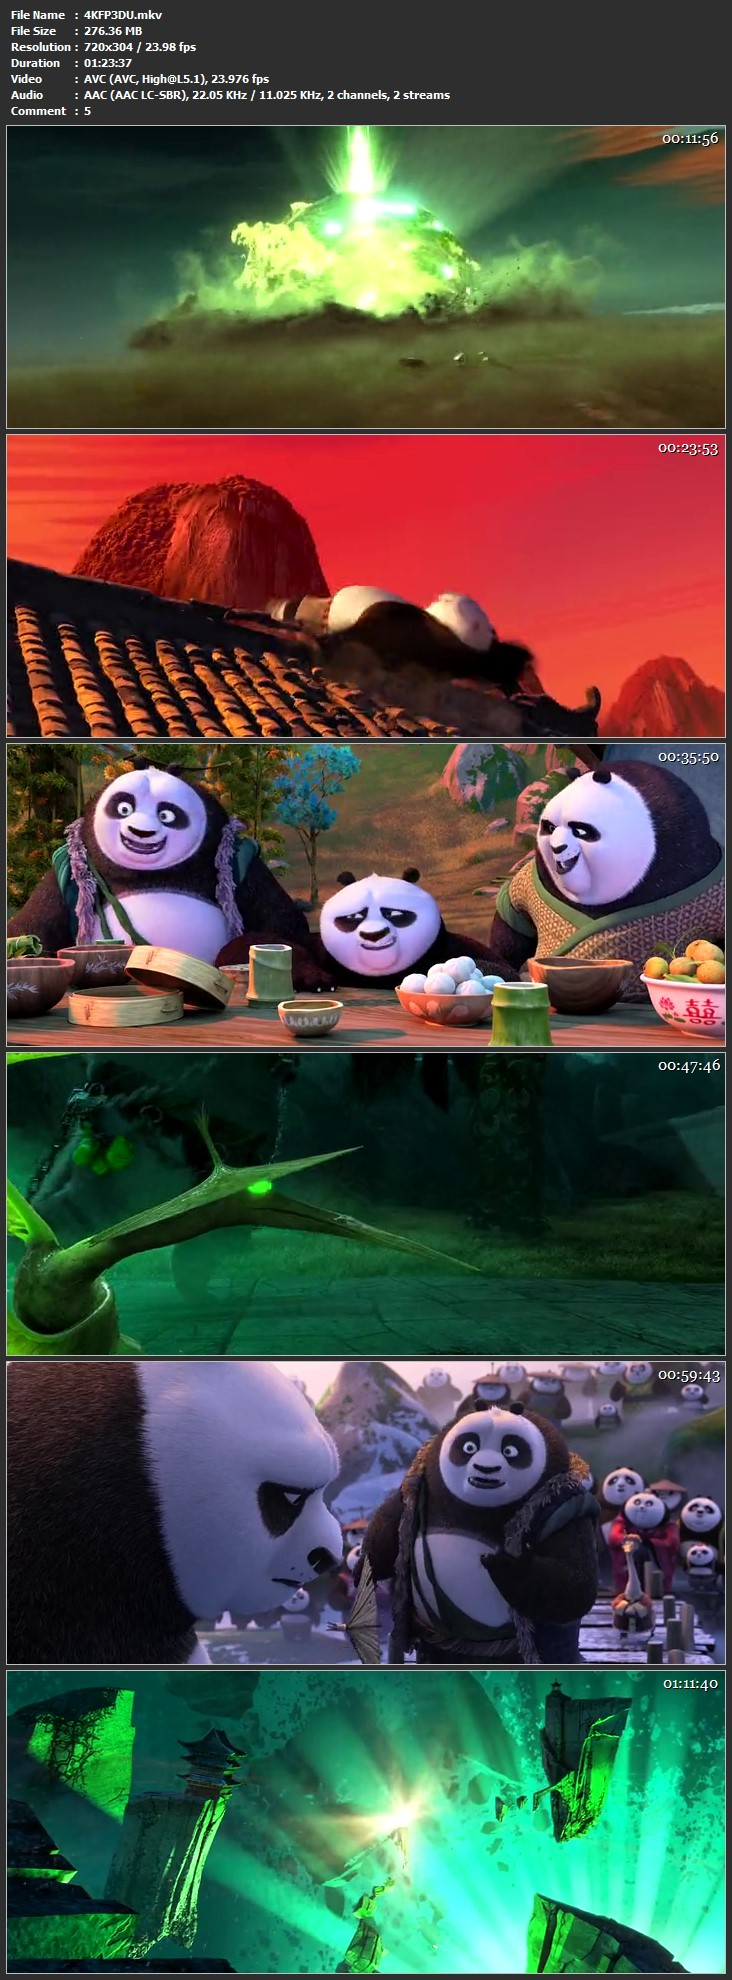 Kung Fu Panda 3 full movie in hindi download mp4 275MB 480P WebDL